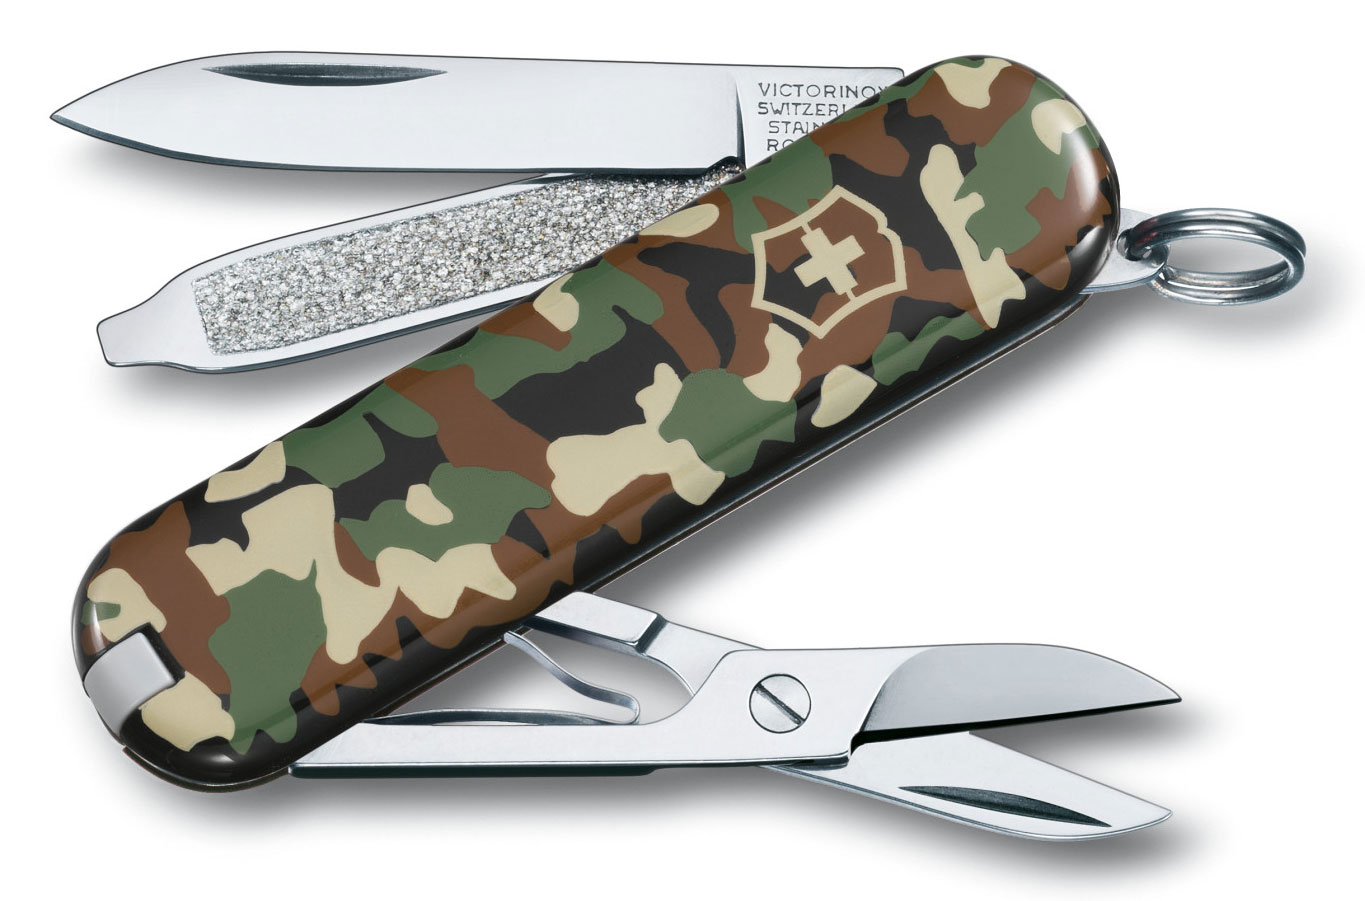 Victorinox Swiss Army Knife Camouflage Collection